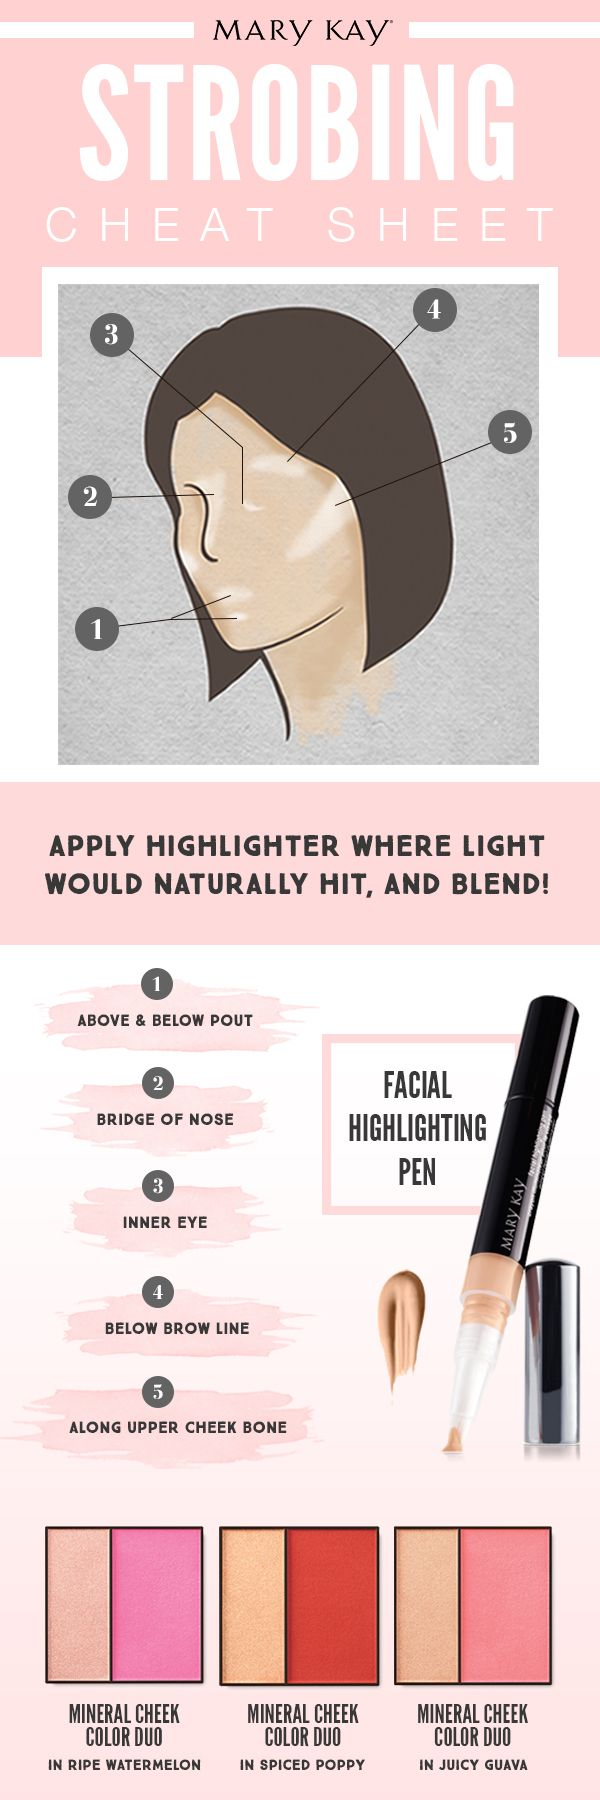 Goodbye contouring, hello strobing! Here's all you need to know about the latest makeup trend that focuses on highlighting where light naturally touches your face! | Mary Kay http://www.marykay.com/lisabarber68 Call or text 386-303-2400 or 832-823-1123